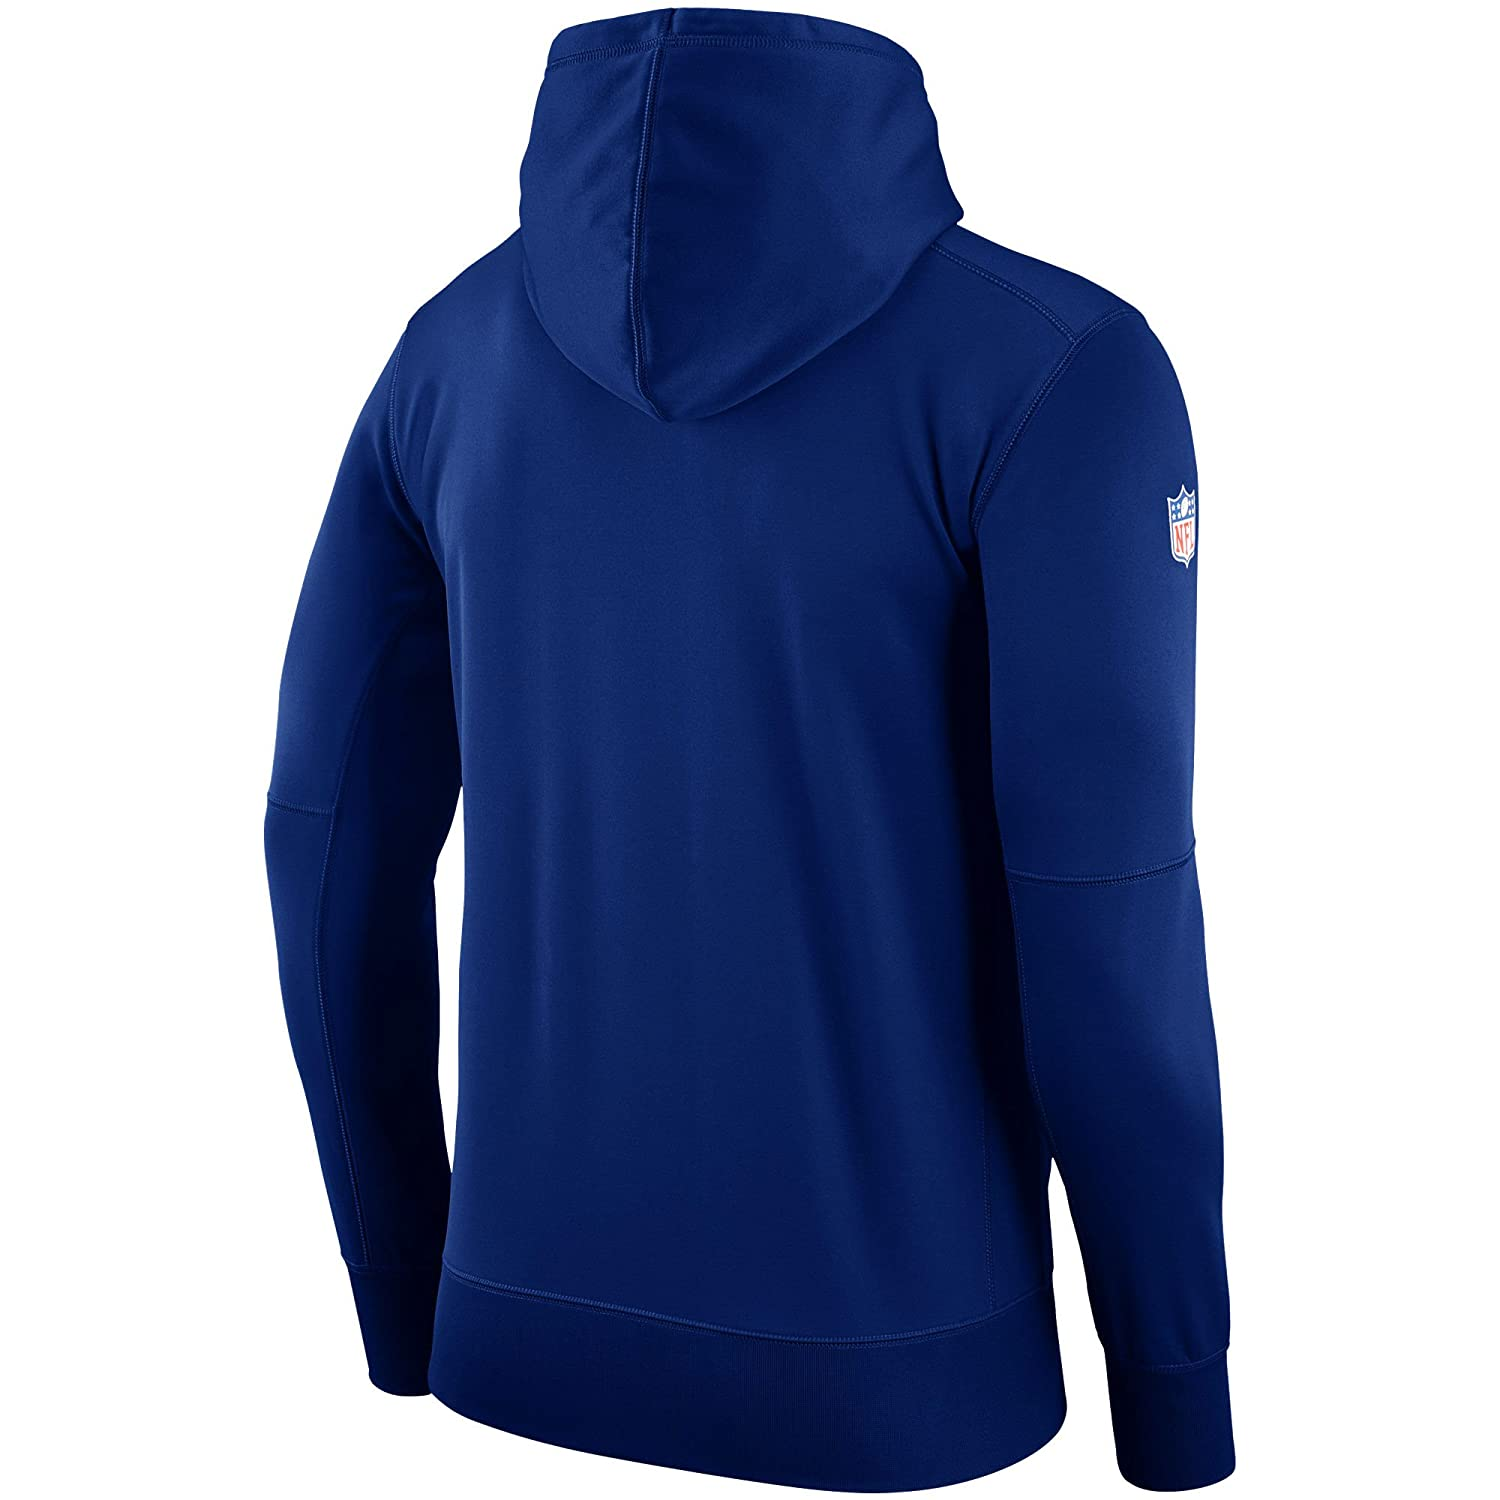 Nike Men s New York Giants Sideline Performance Pullover Hoodie Game Royal  837431-495 at Amazon Men s Clothing store  7773d5a10